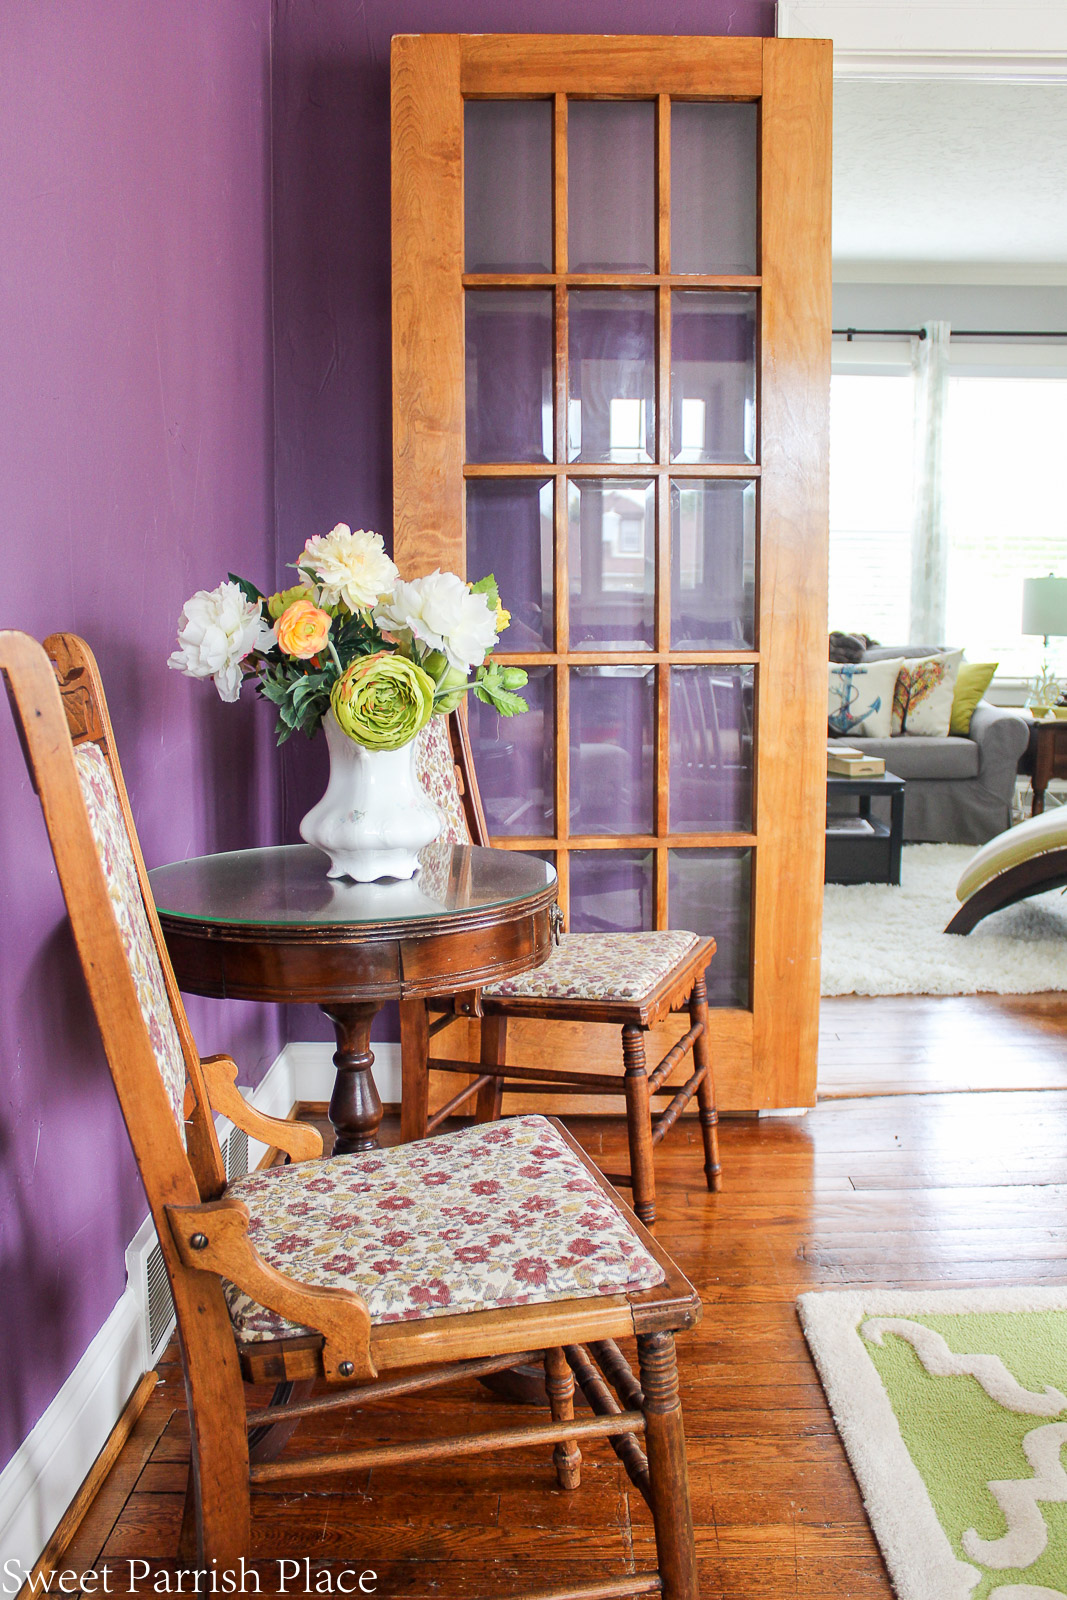 97 year old home tour-vintage chairs